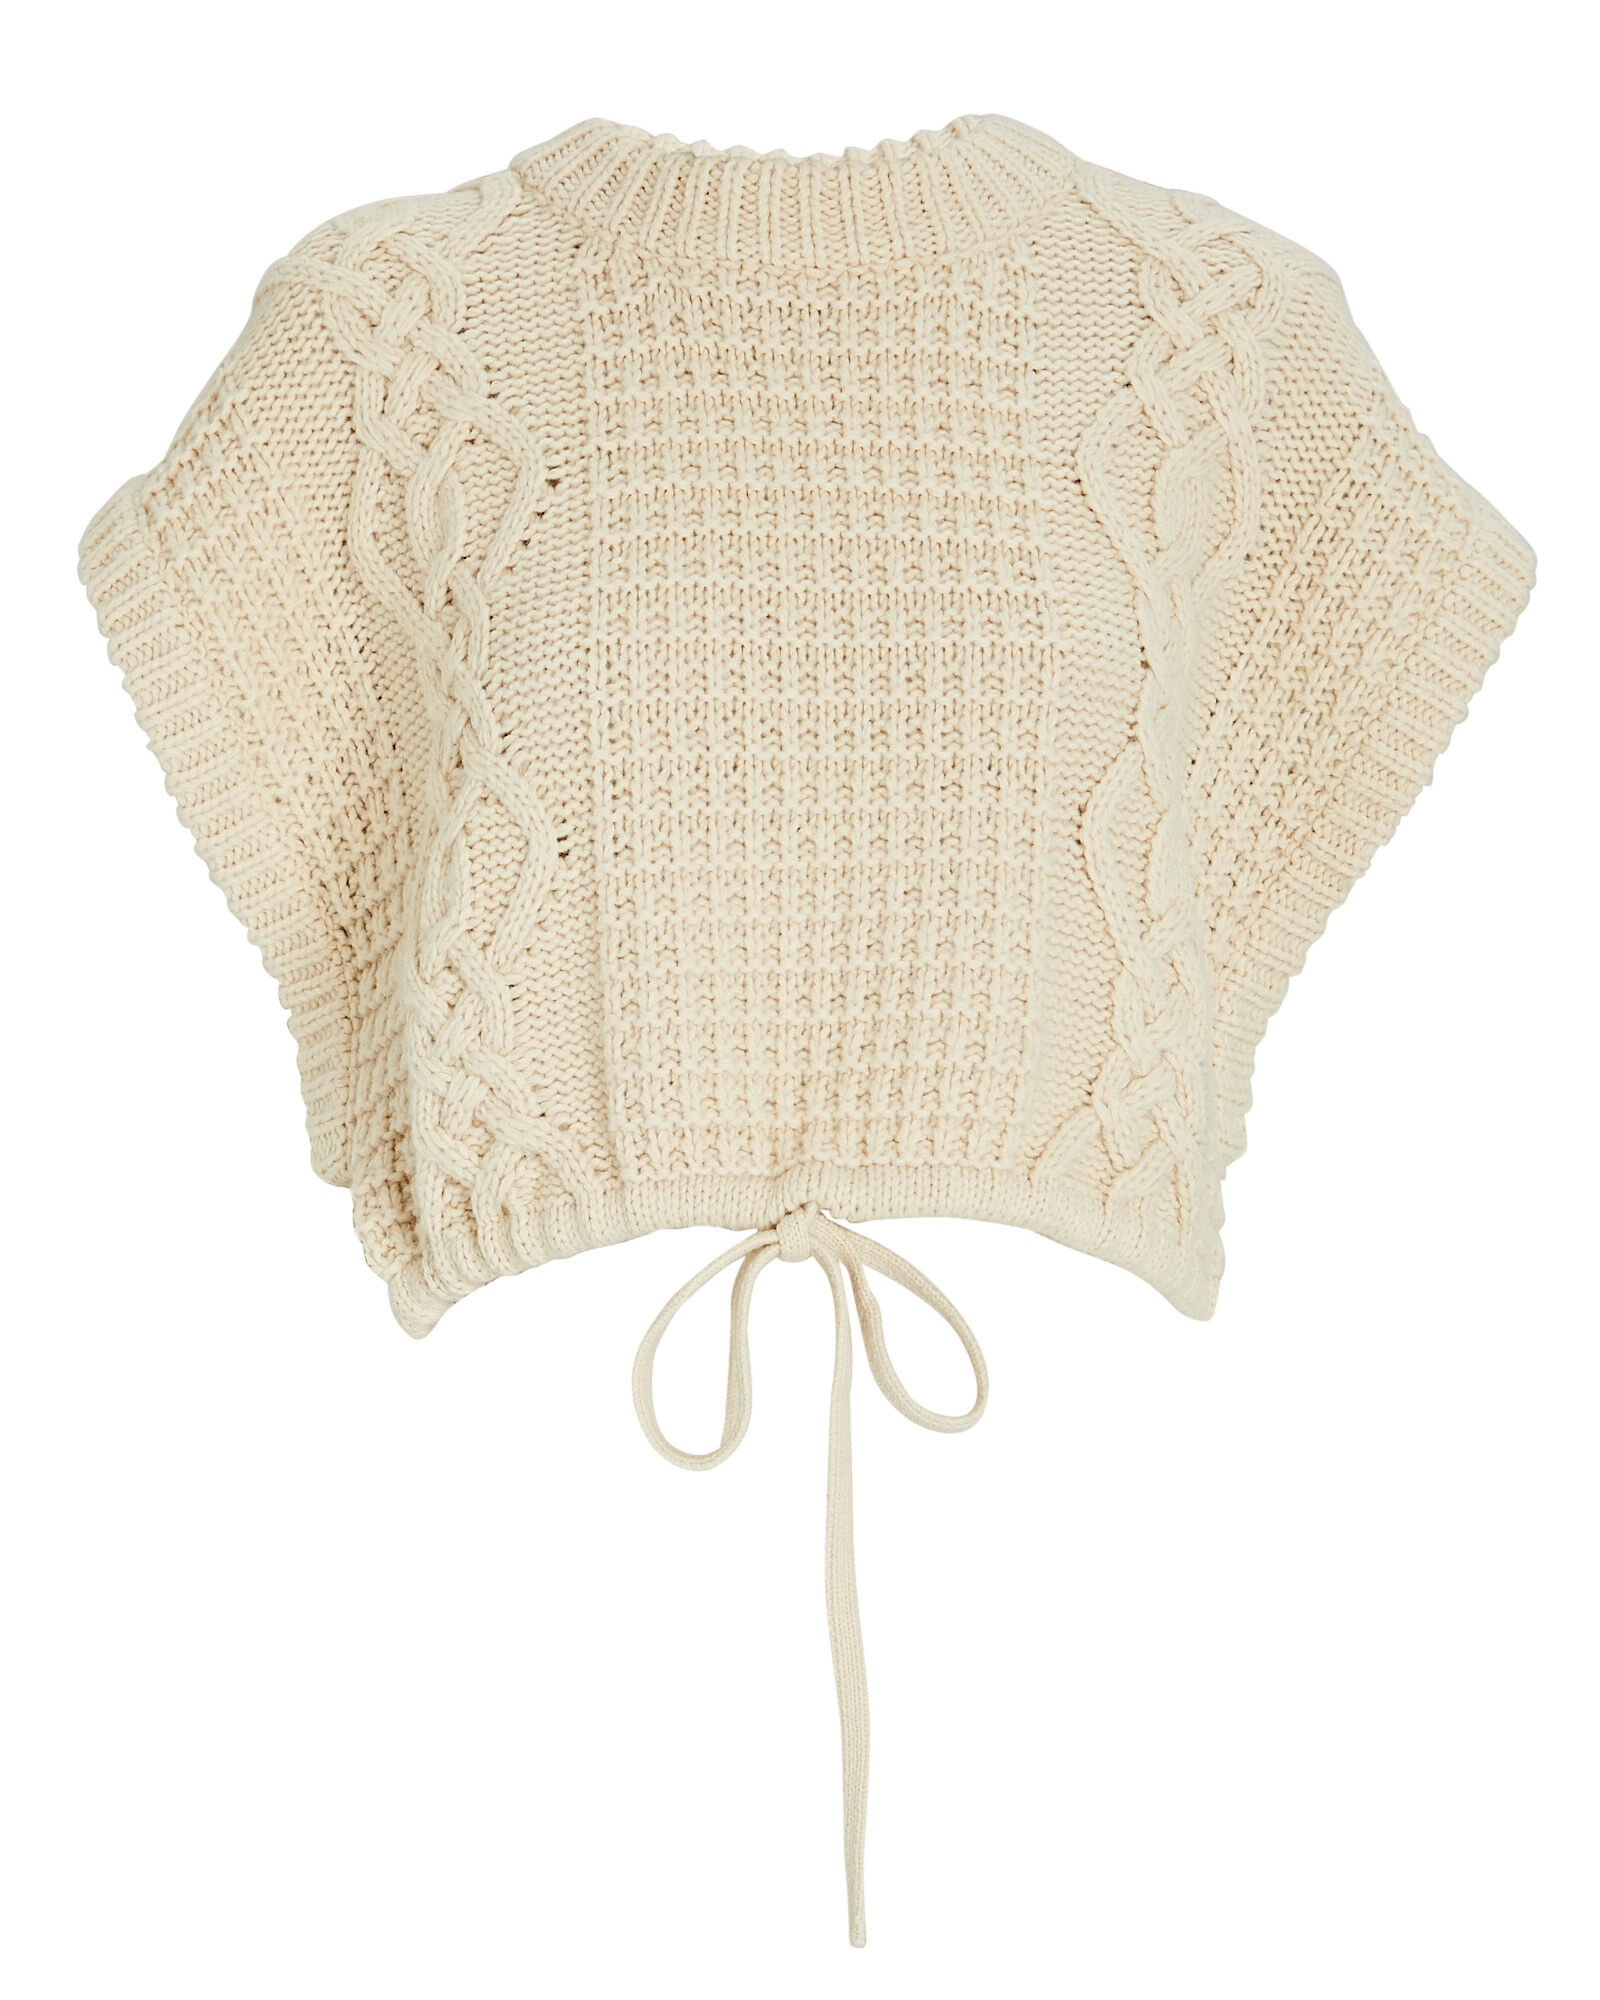 Camille Sleeveless Cable Knit Sweater, BEIGE, hi-res